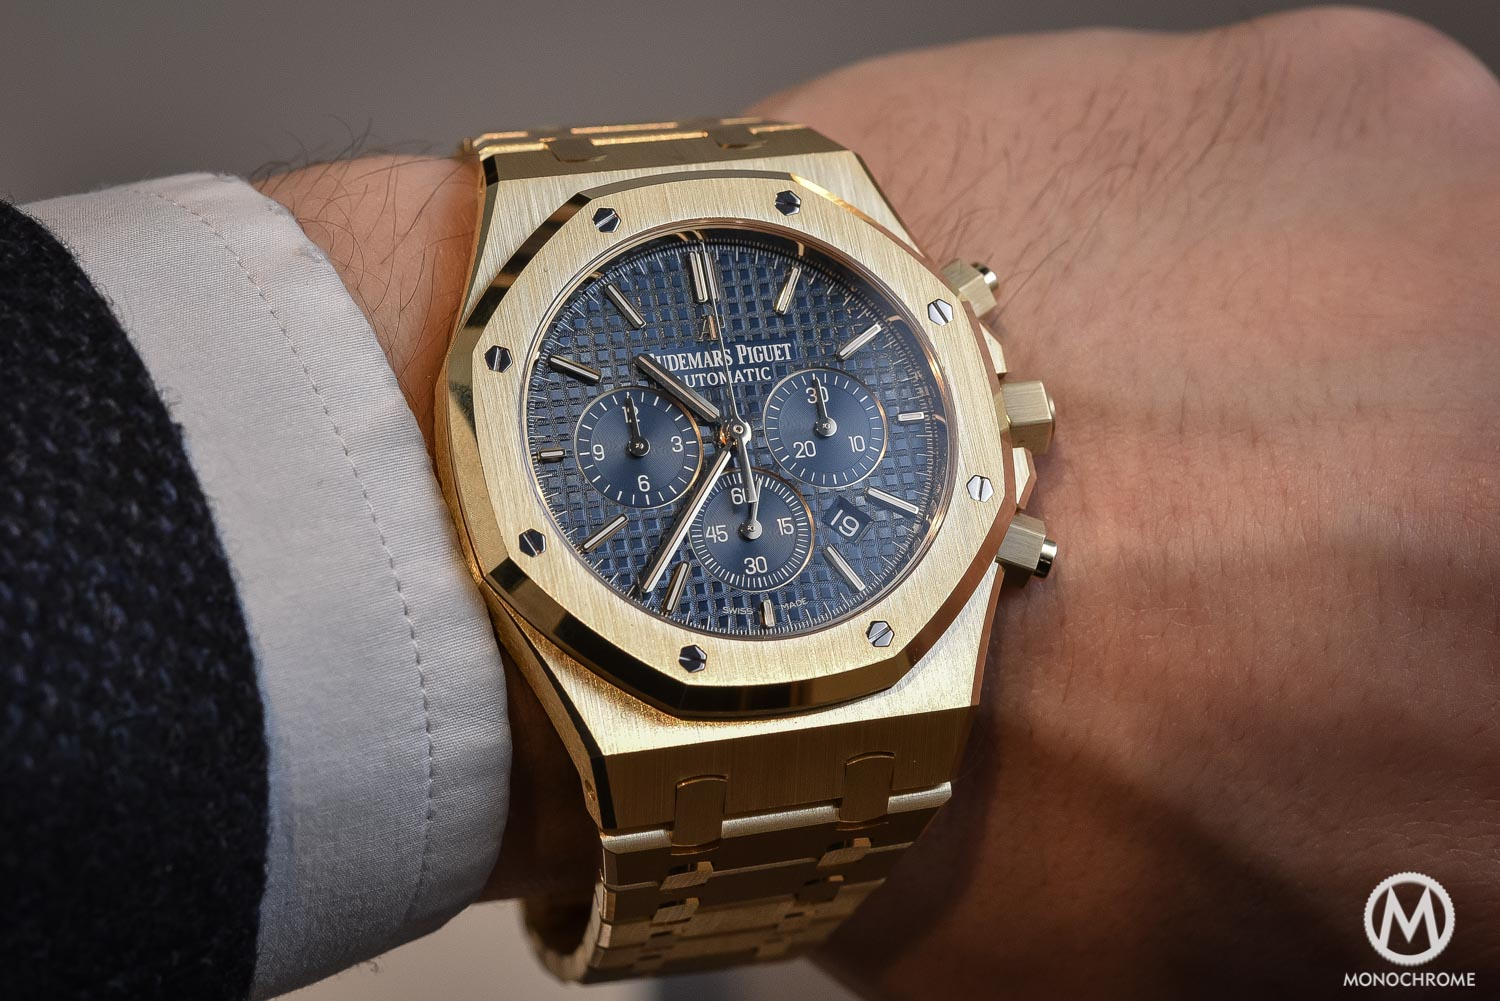 SIHH 2016 – Yellow Gold comes back – Hands-on with the Audemars Piguet Royal Oak Chronograph 26320 Yellow Gold (live pics & price)